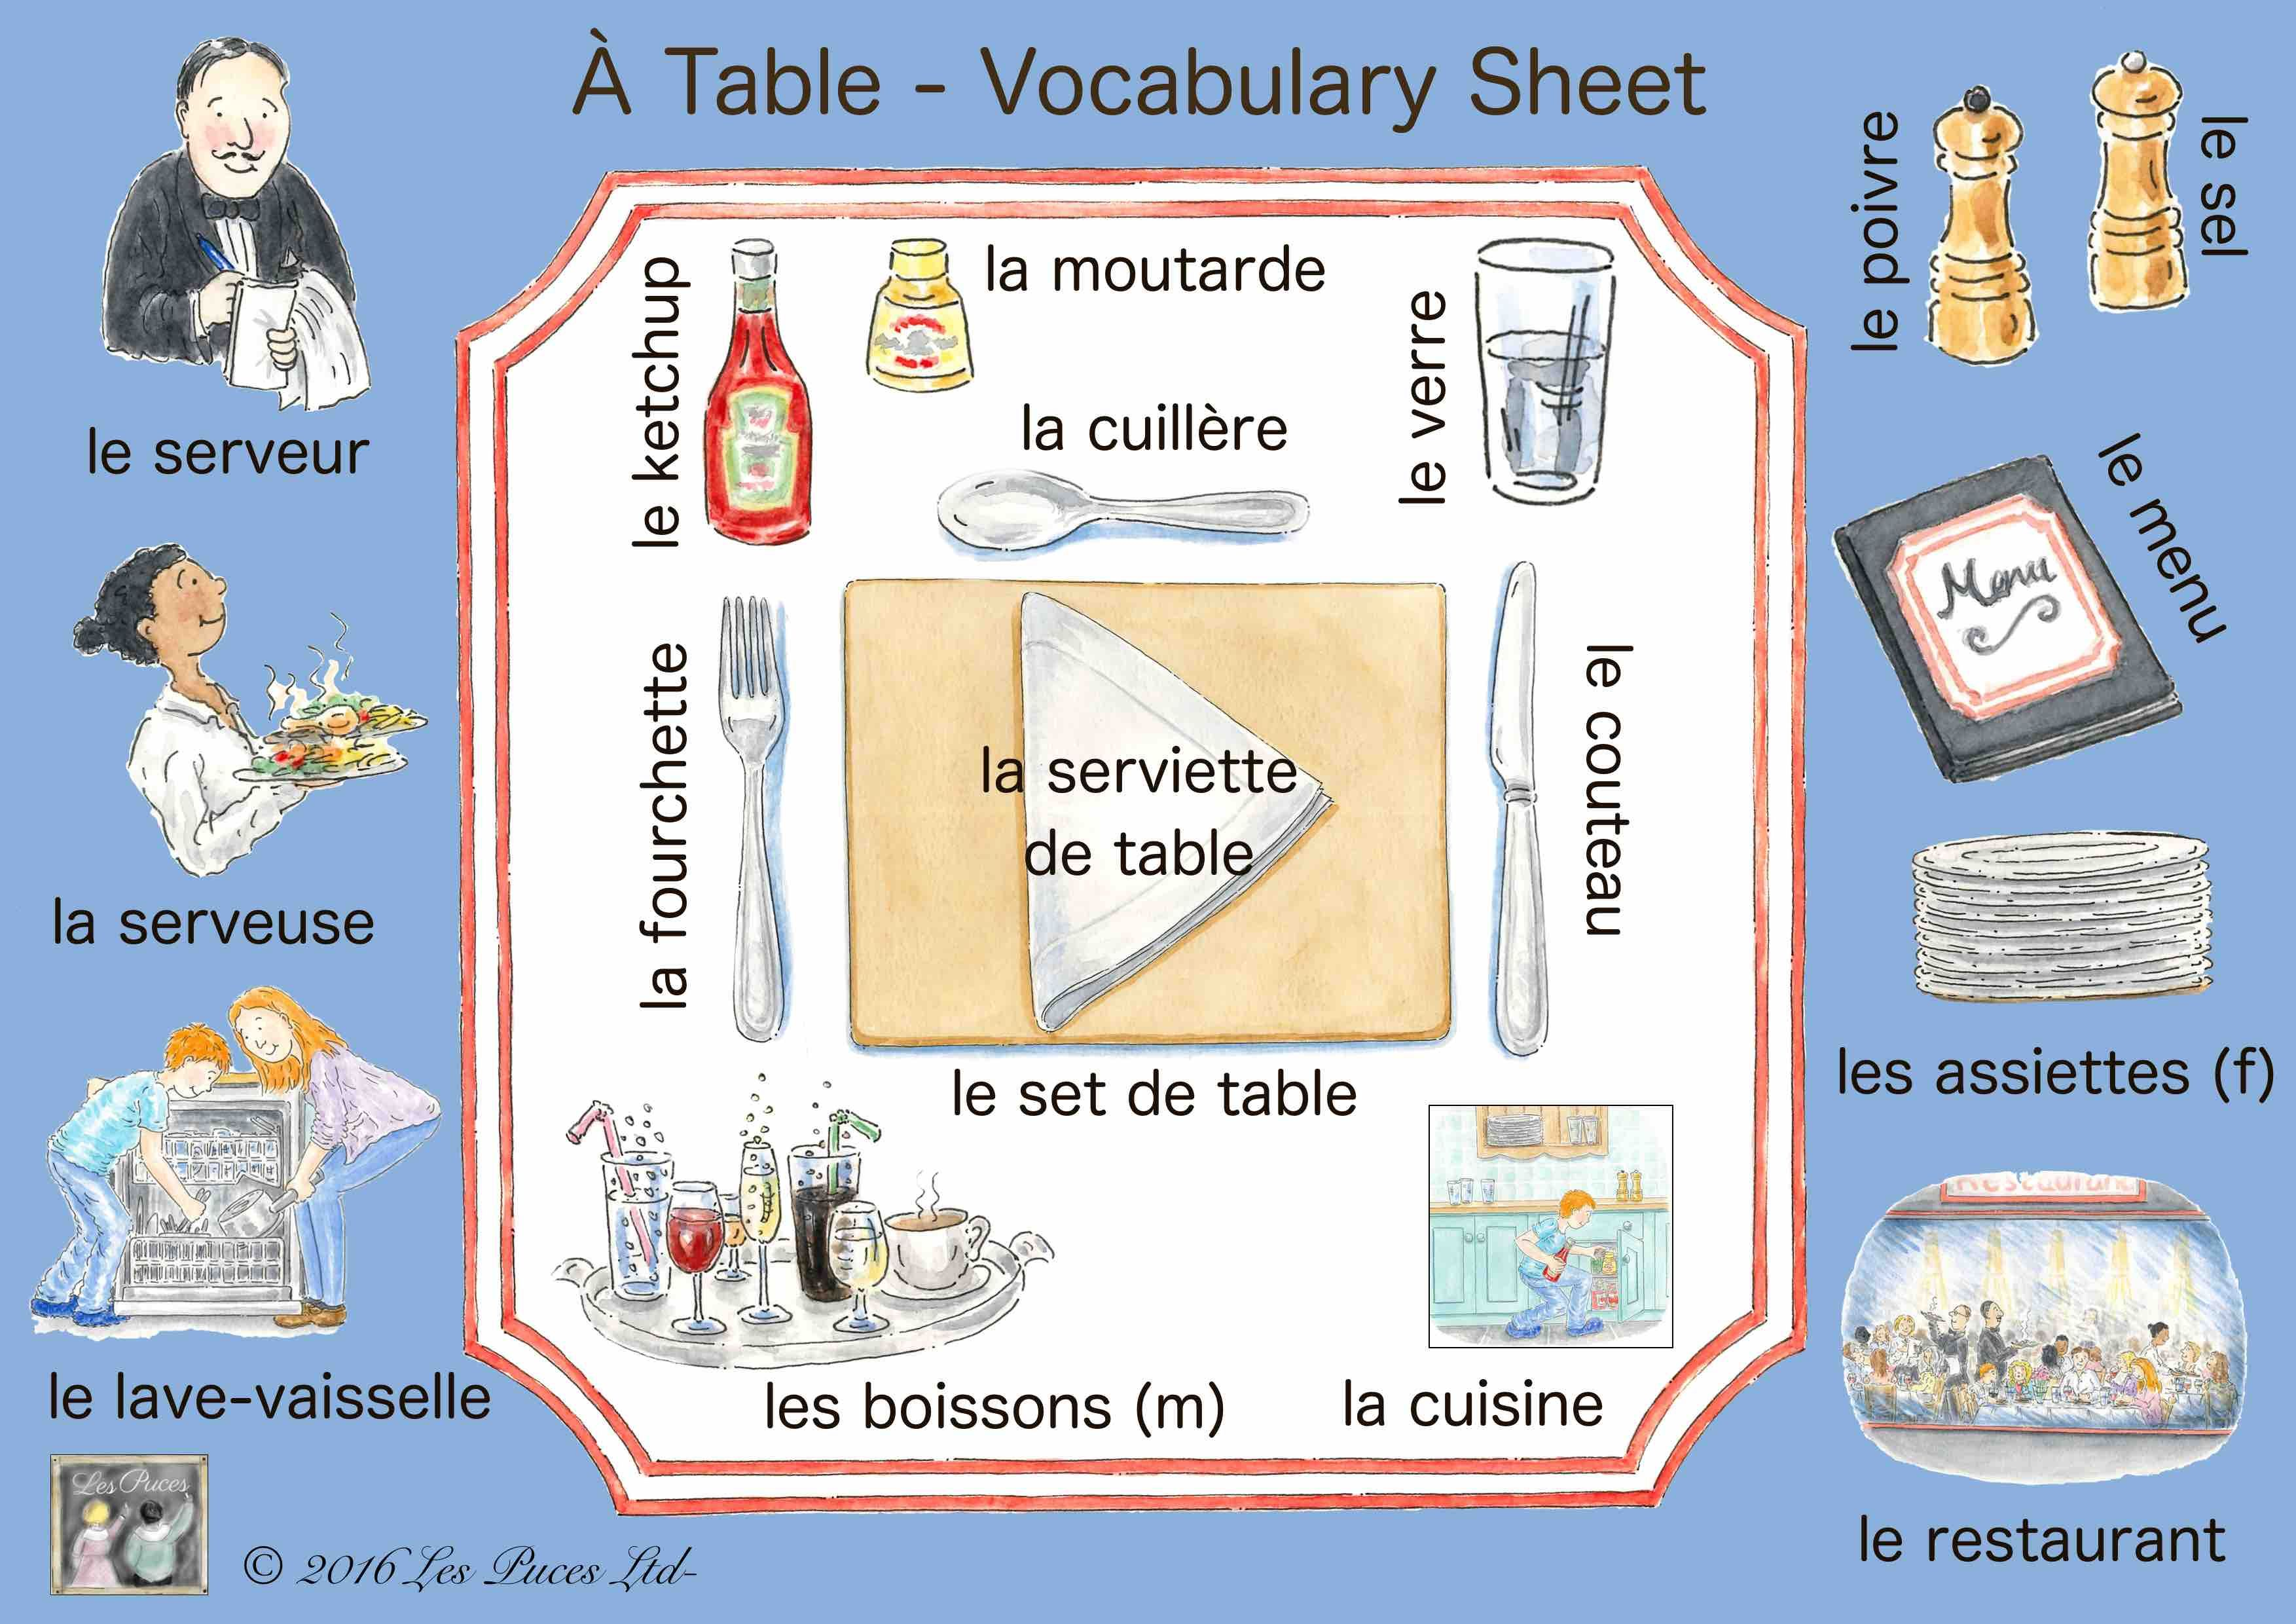 French At The Table And Restaurants Vocabulary Sheet Bt